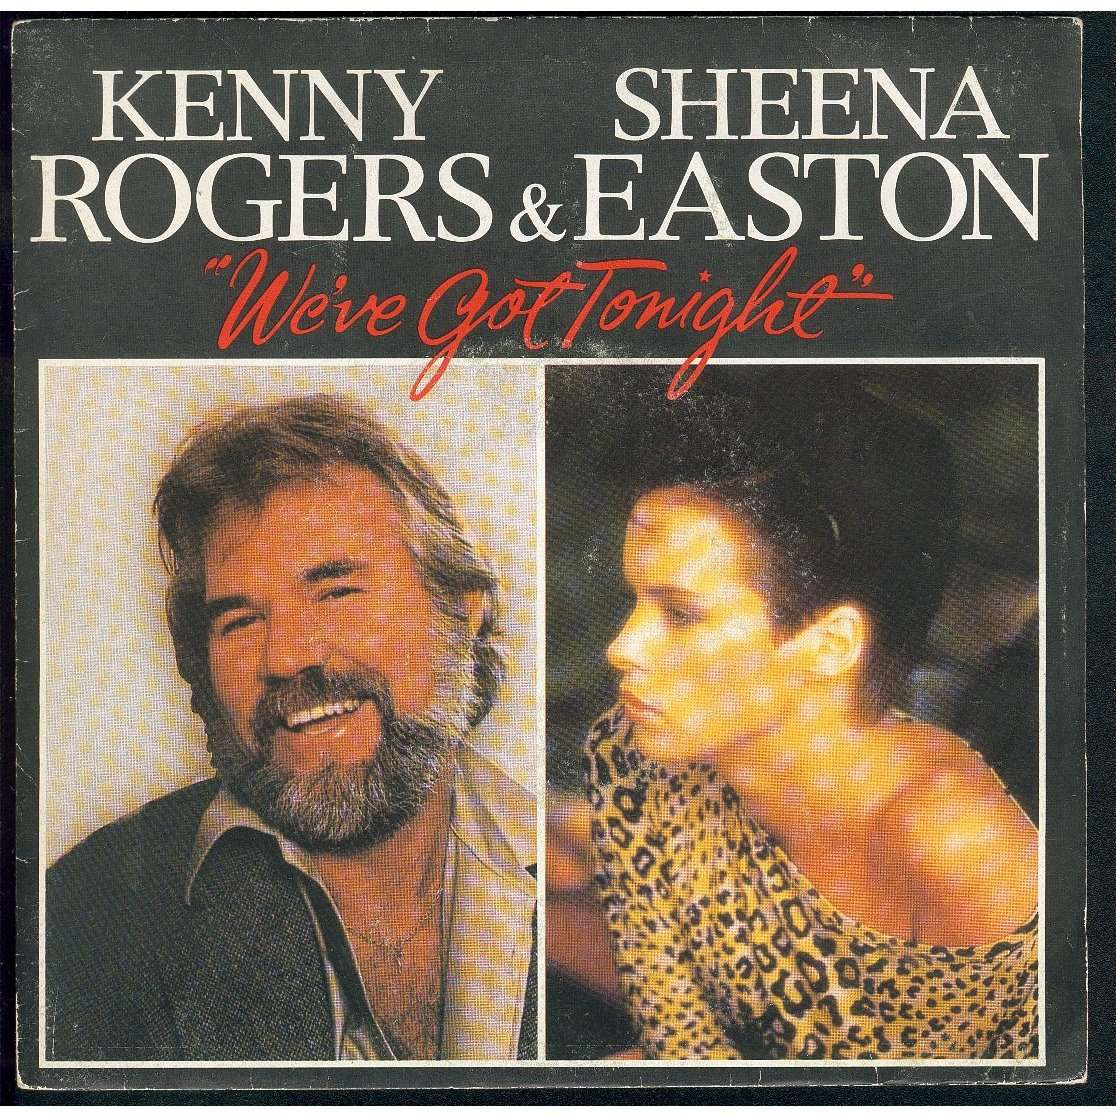 We Ve Got Tonight By Kenny Rogers Amp Sheena Easton Sp With